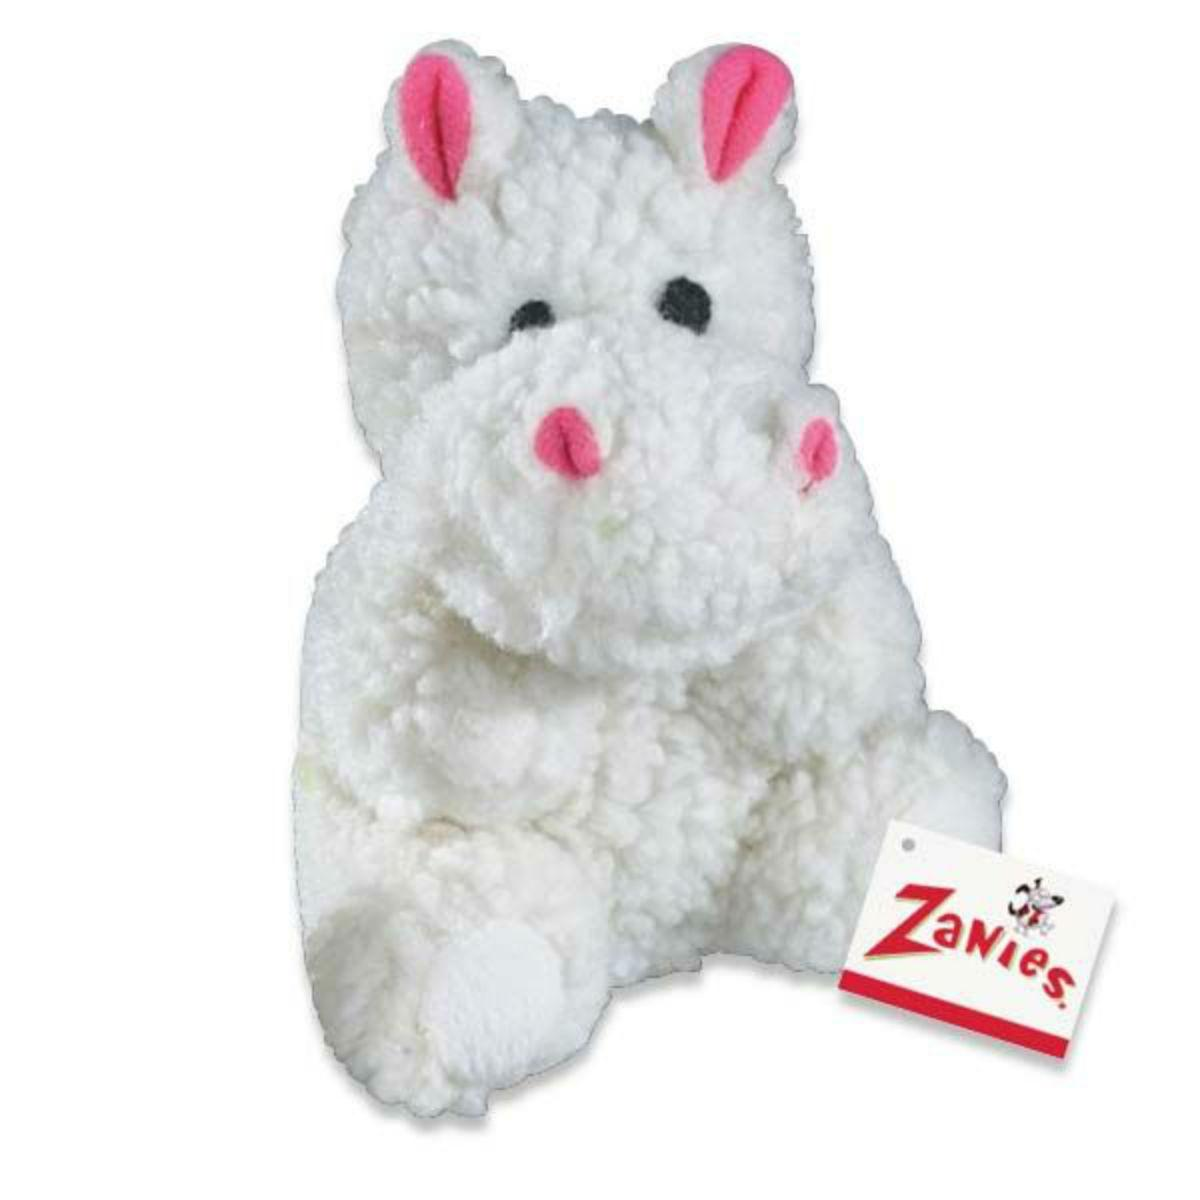 Zanies Fleecy Friends Dog Toy - Hippo